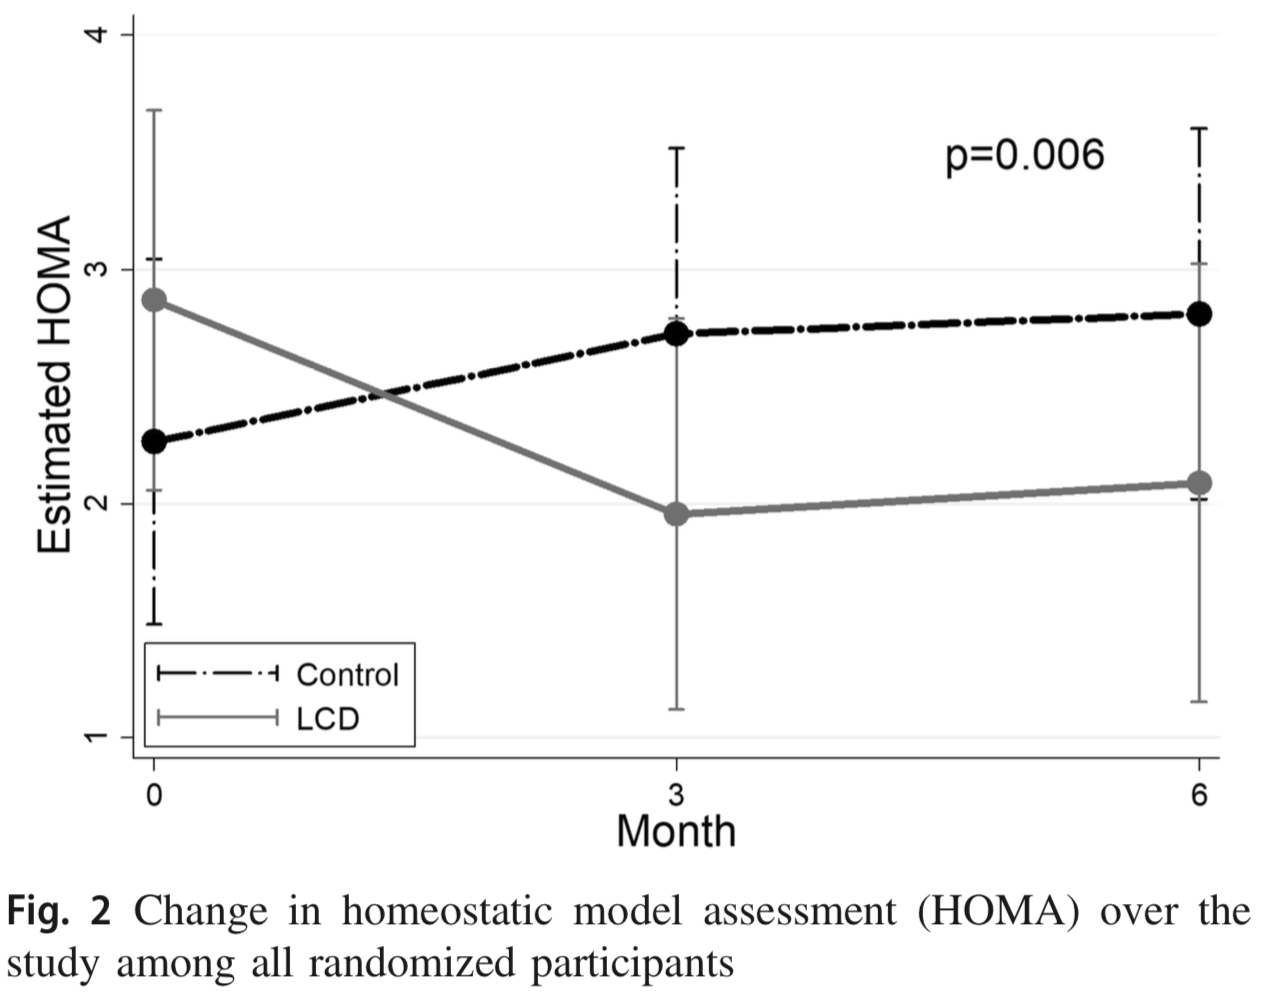 Fig 2 Change in HOMA